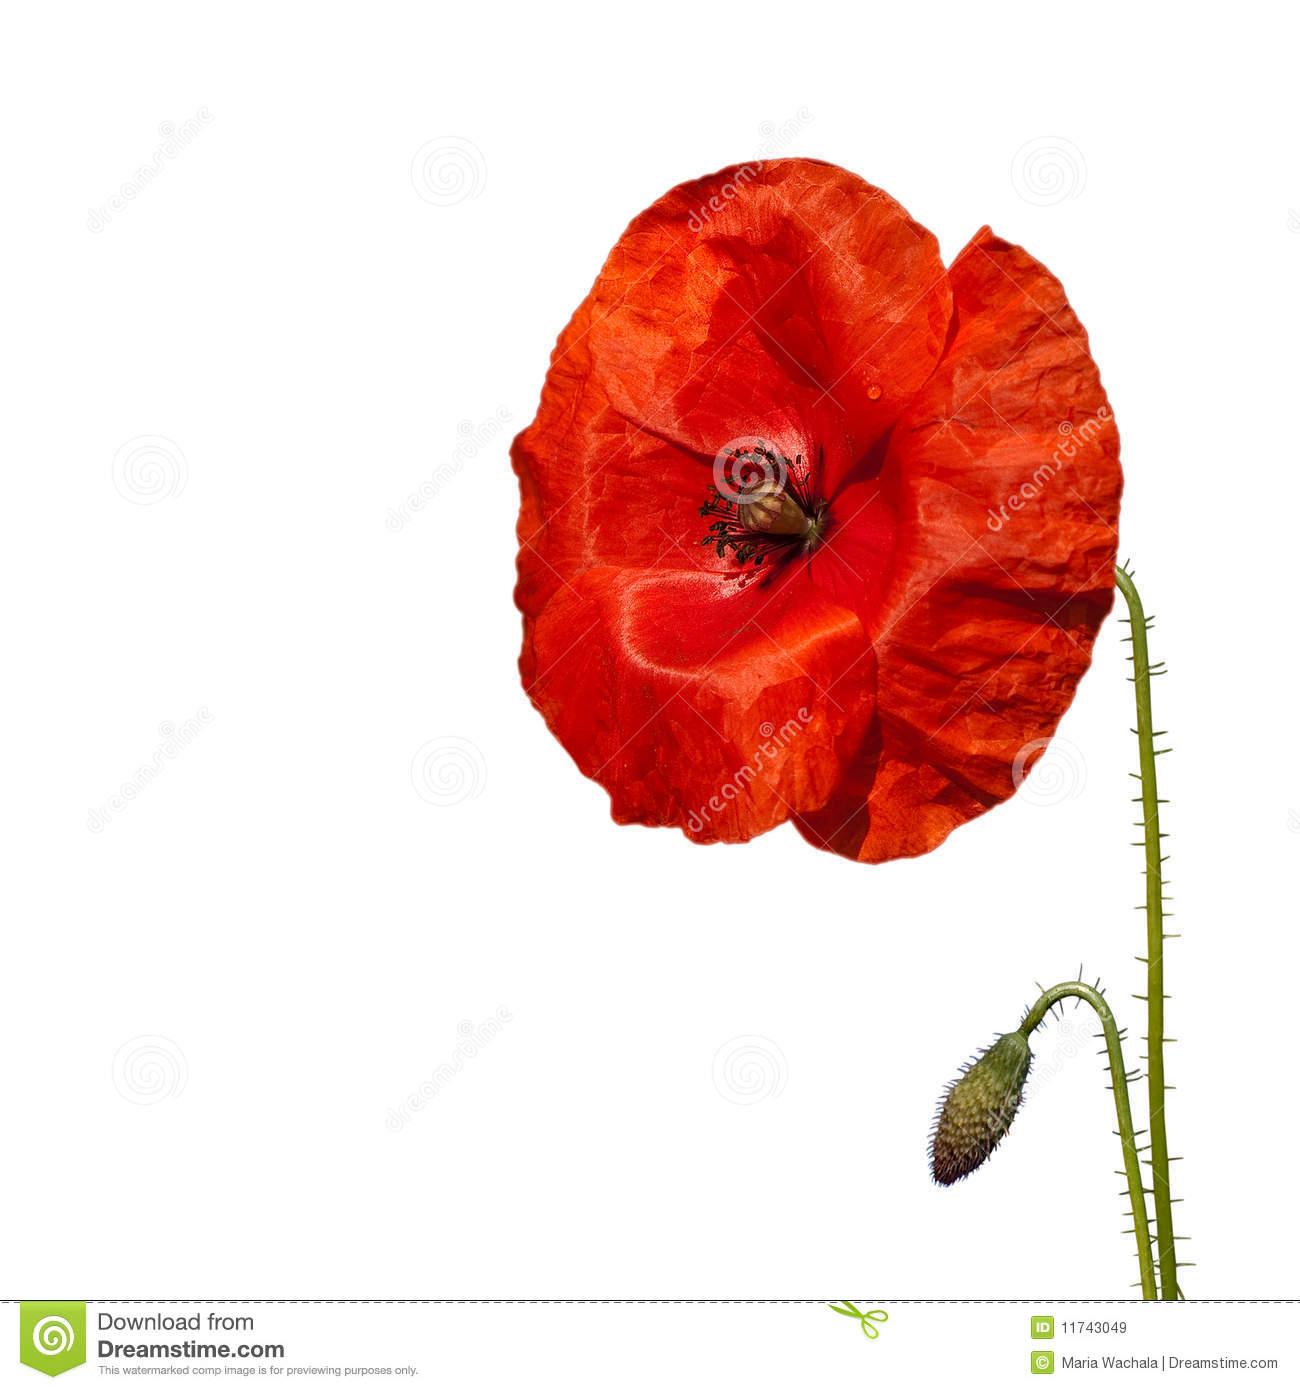 Red poppy flower stock image image of color natural 11743049 download red poppy flower stock image image of color natural 11743049 mightylinksfo